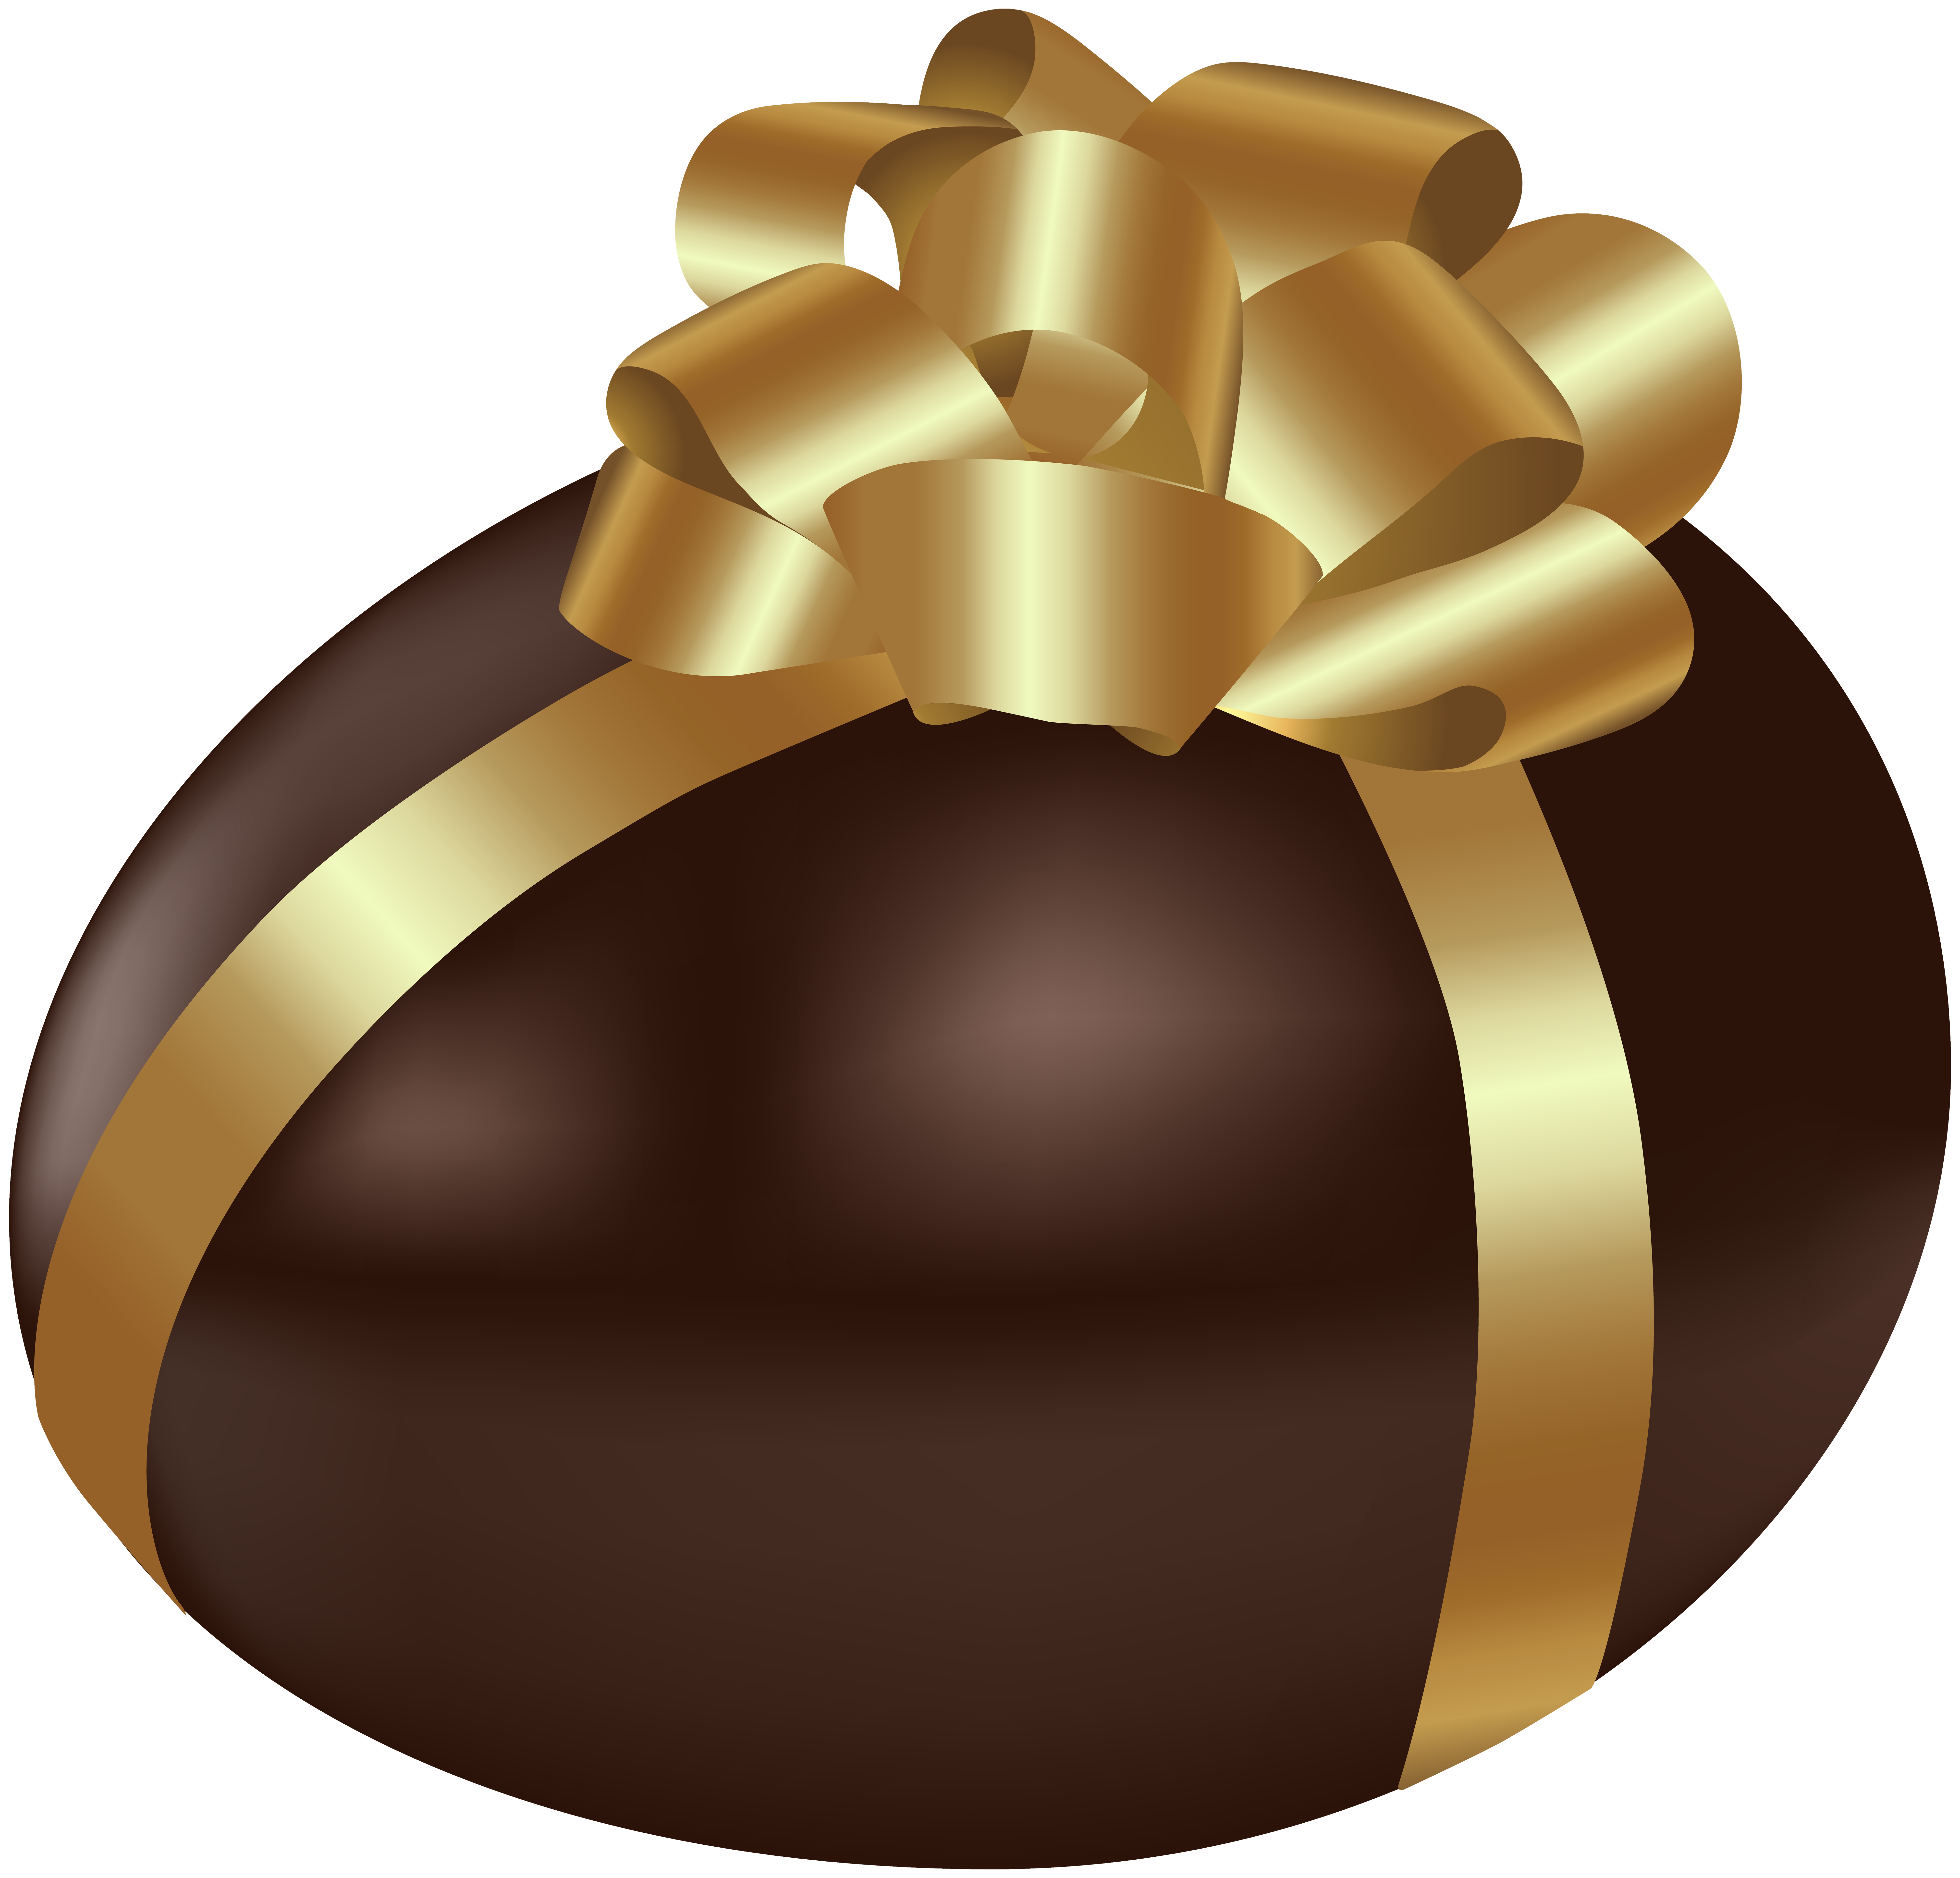 Easter Chocolate Egg Transparent PNG Clip Art.